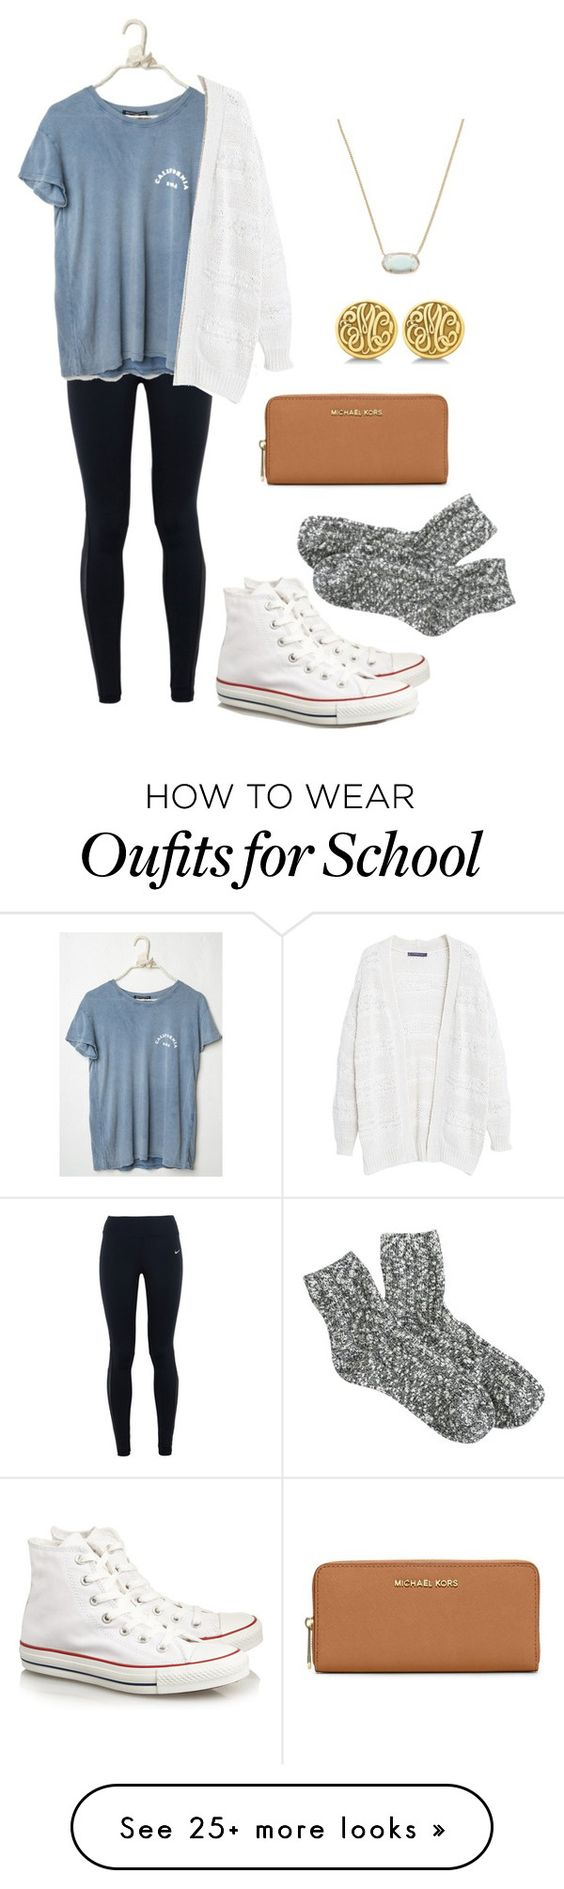 12 Ways to Wear: Casual Outfits for Class